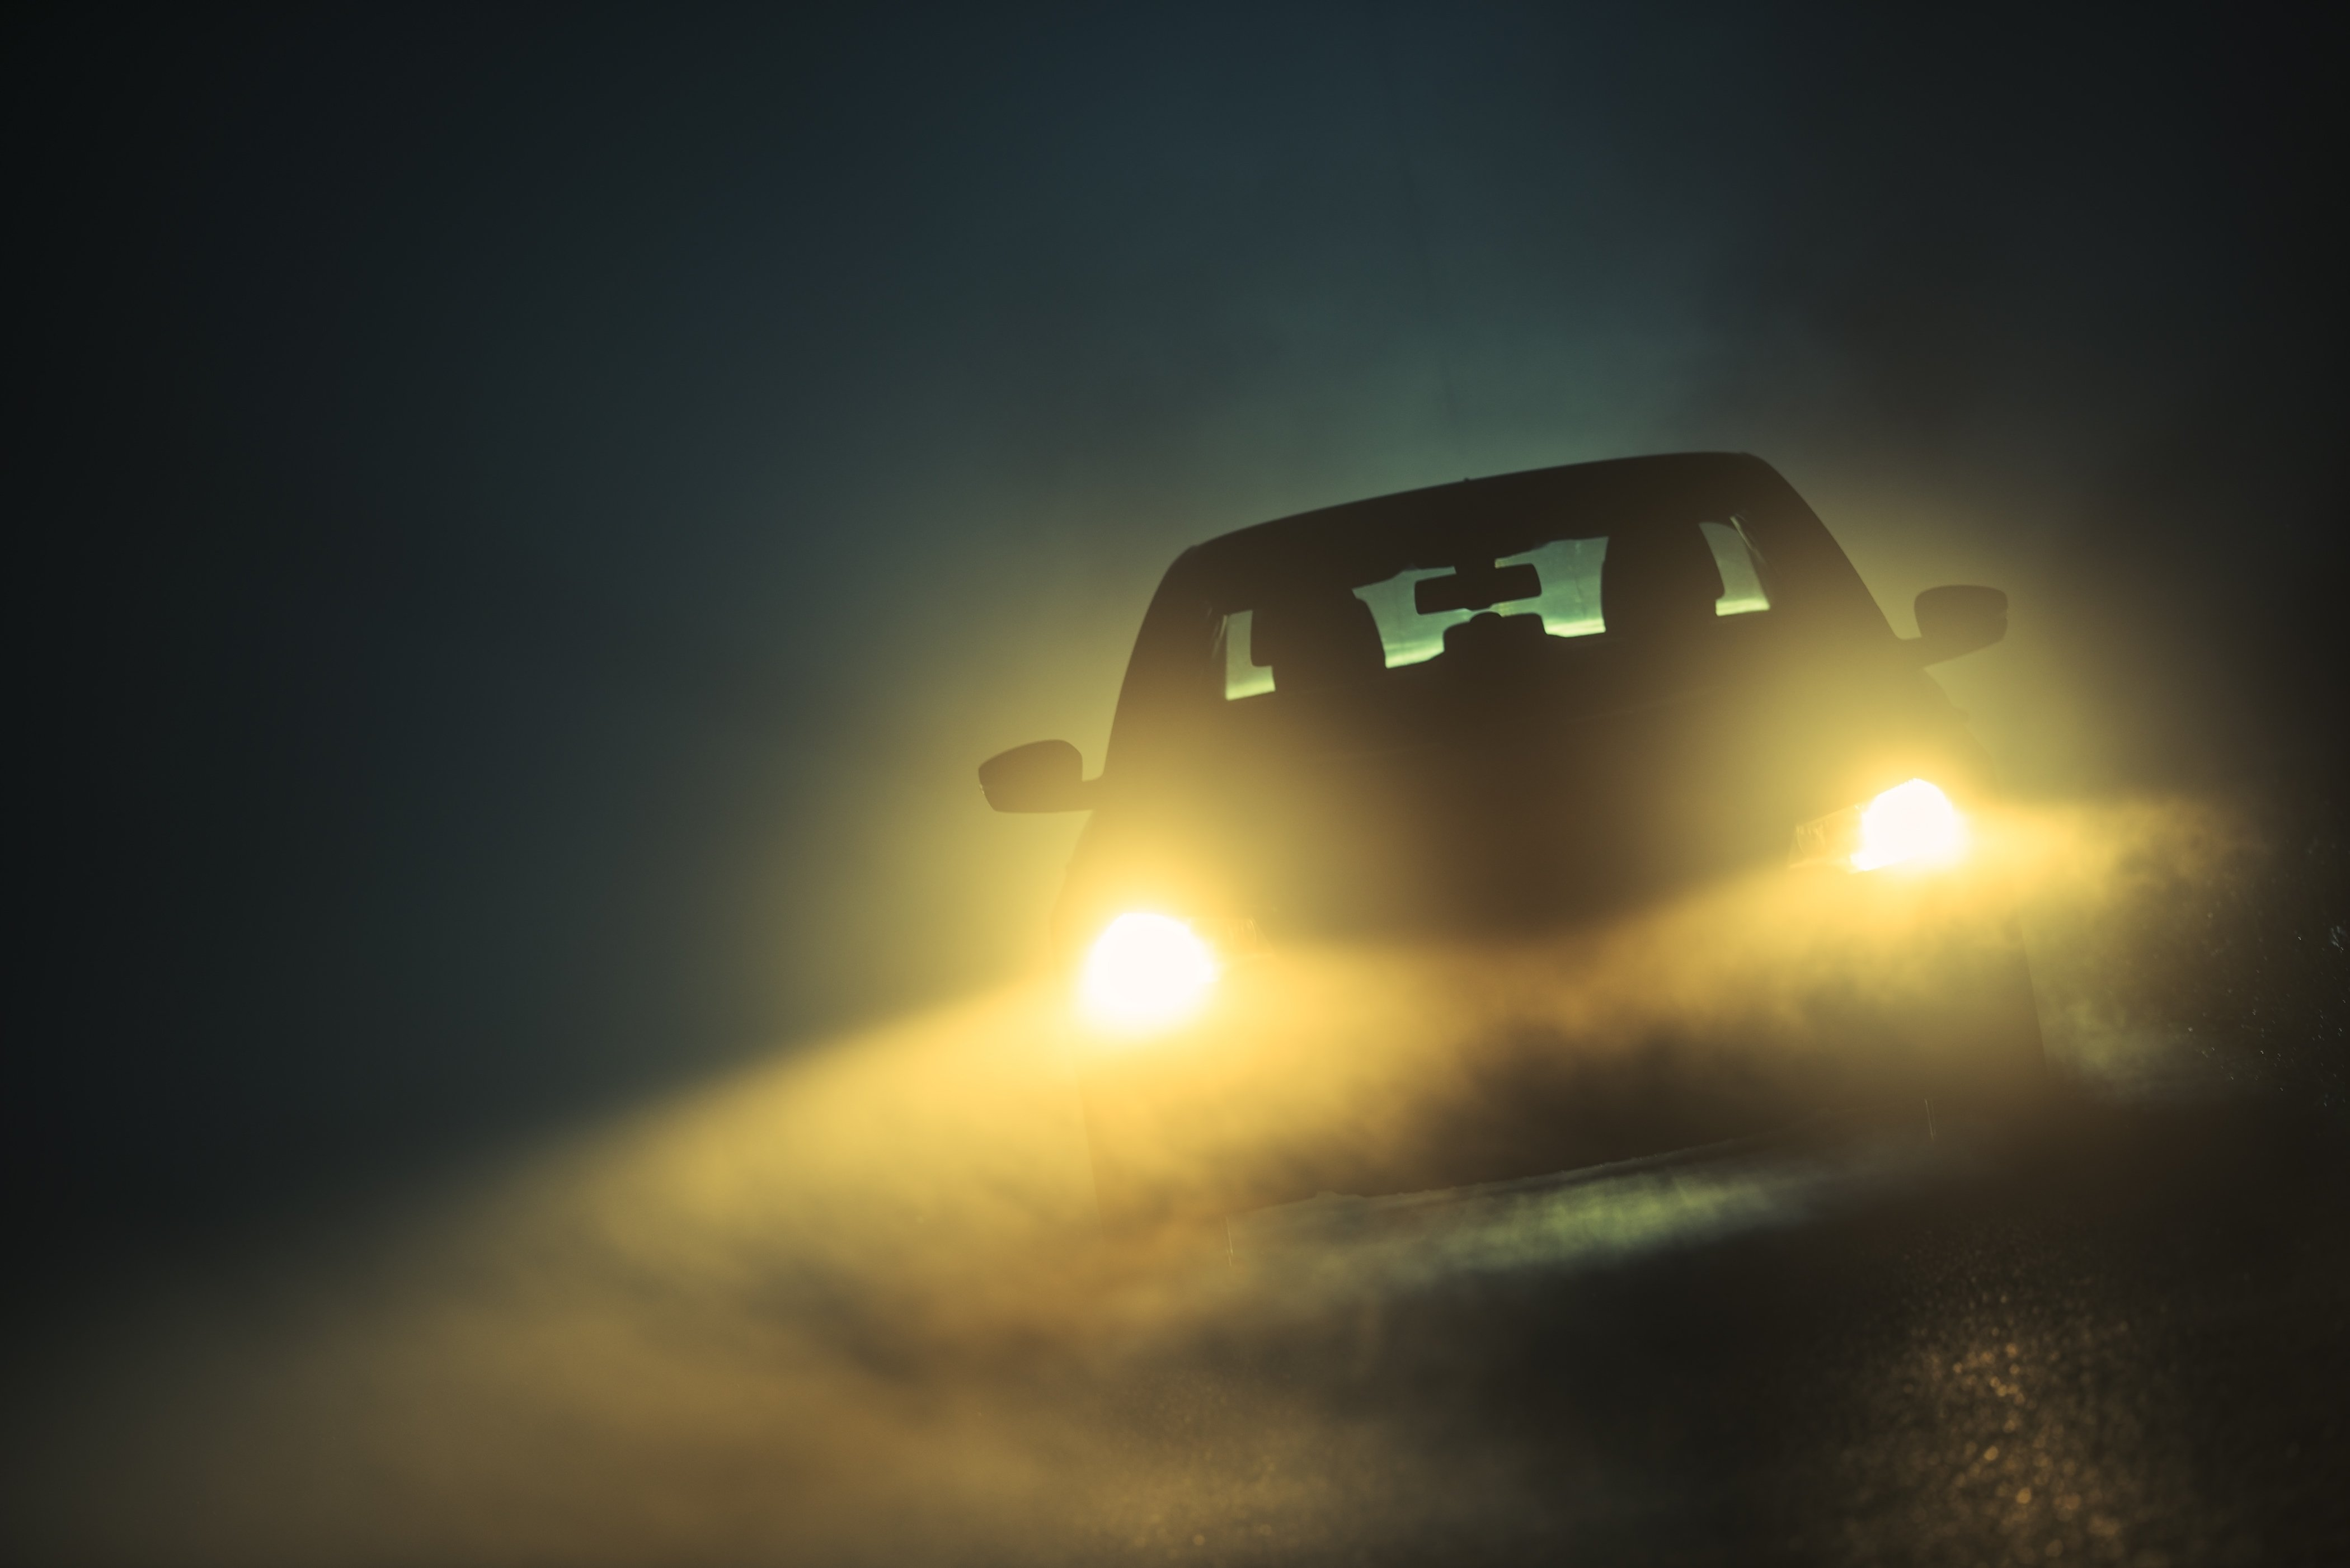 Car at night | Source: Shutterstock